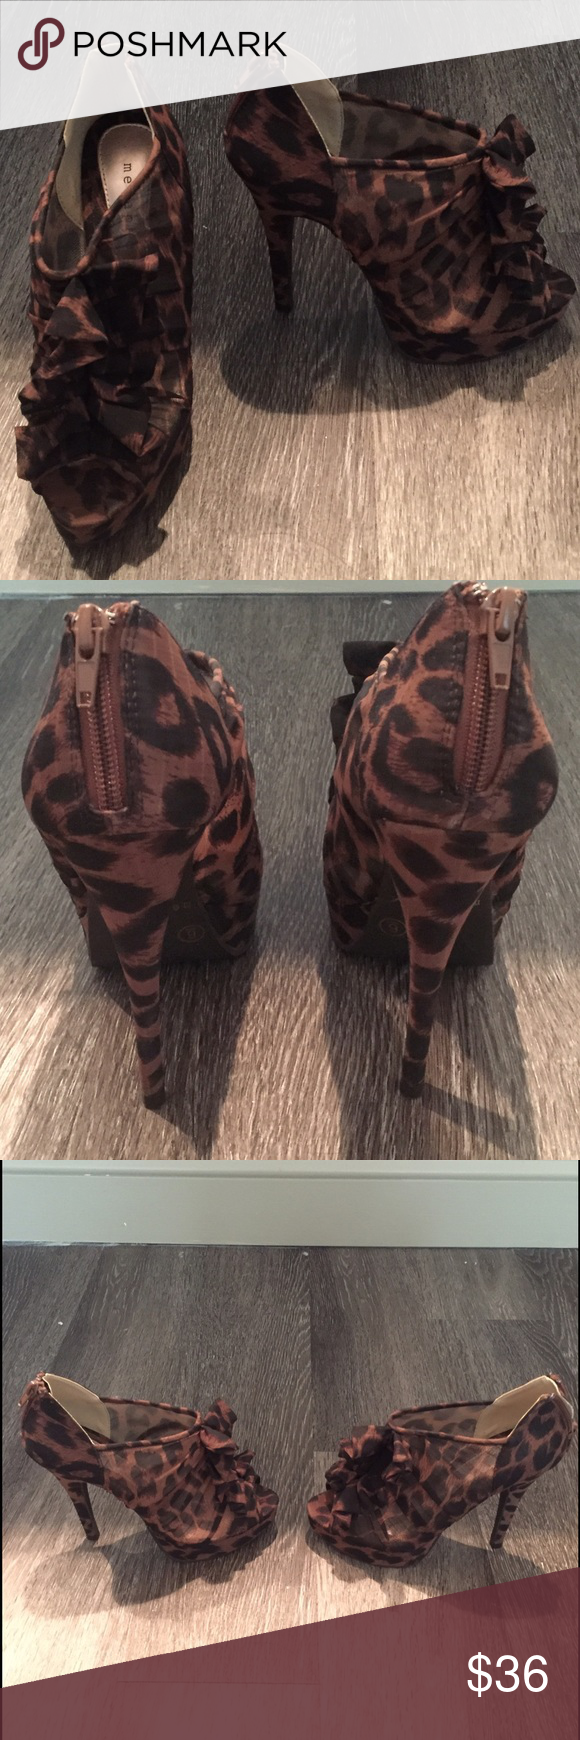 Leopard ruffled booties Never worn outside of store Metaphor Shoes Ankle Boots & Booties